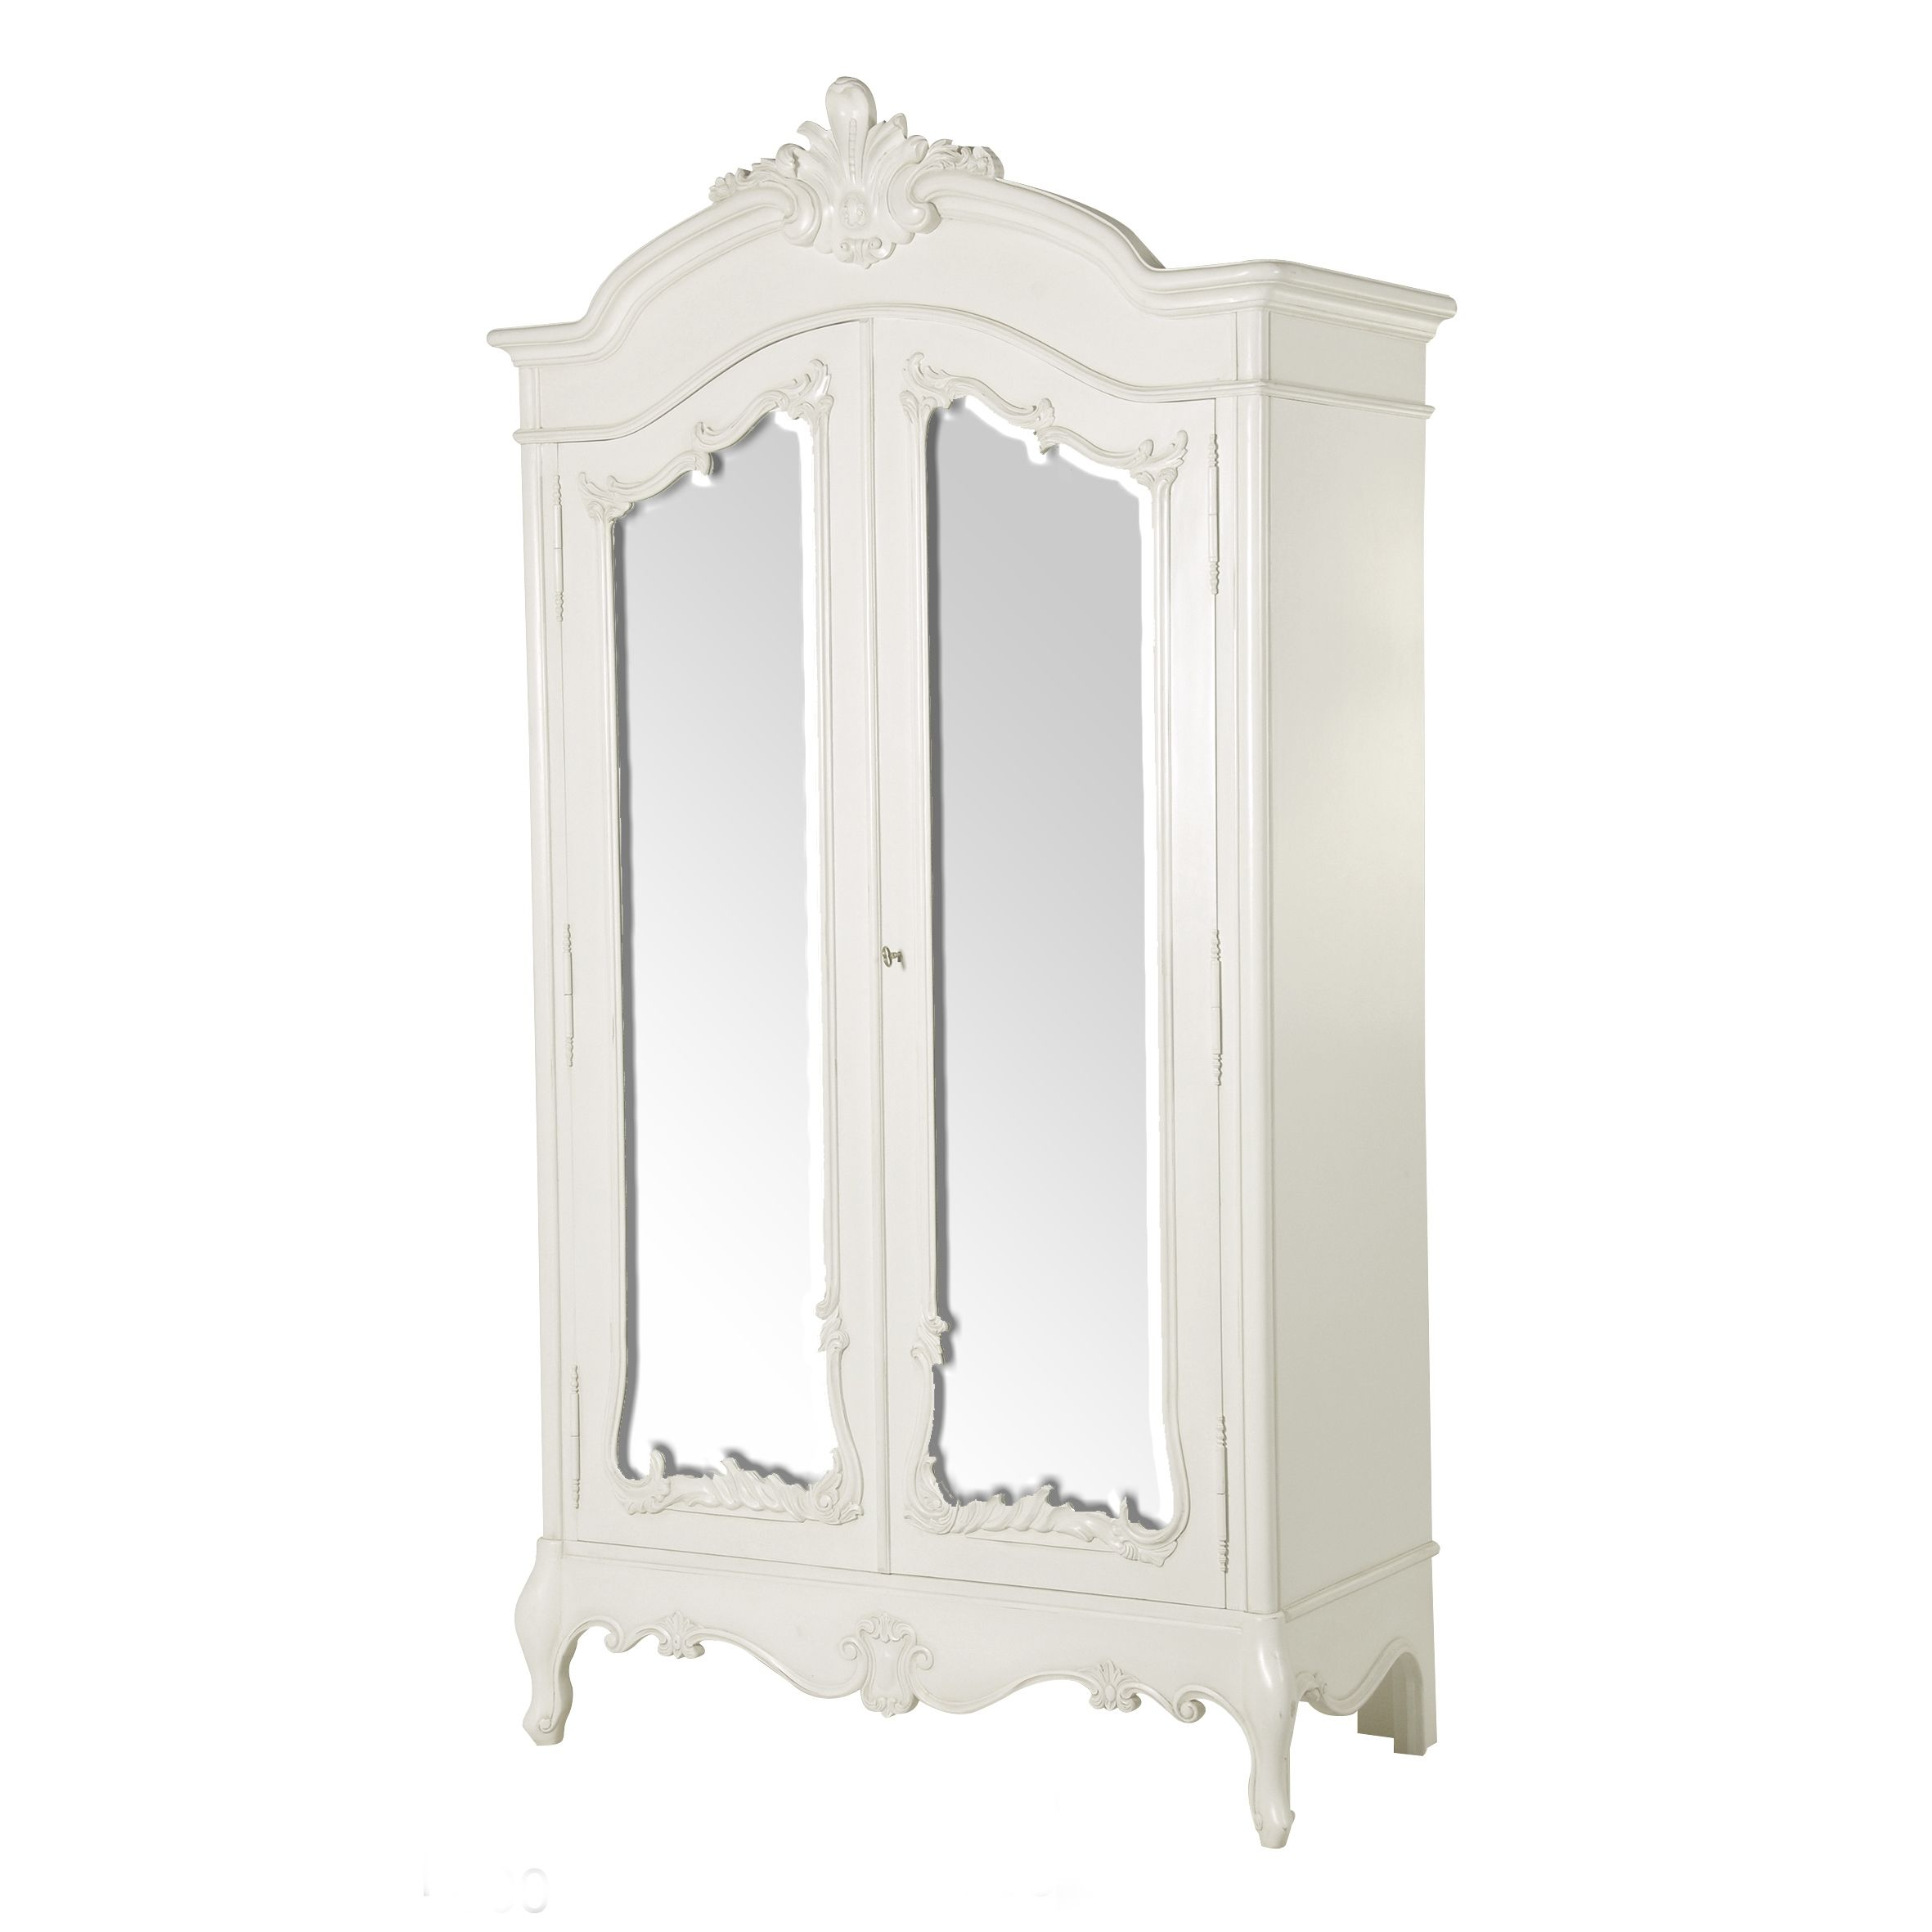 Classical white alexa double mirrored armoire sweet home apartment